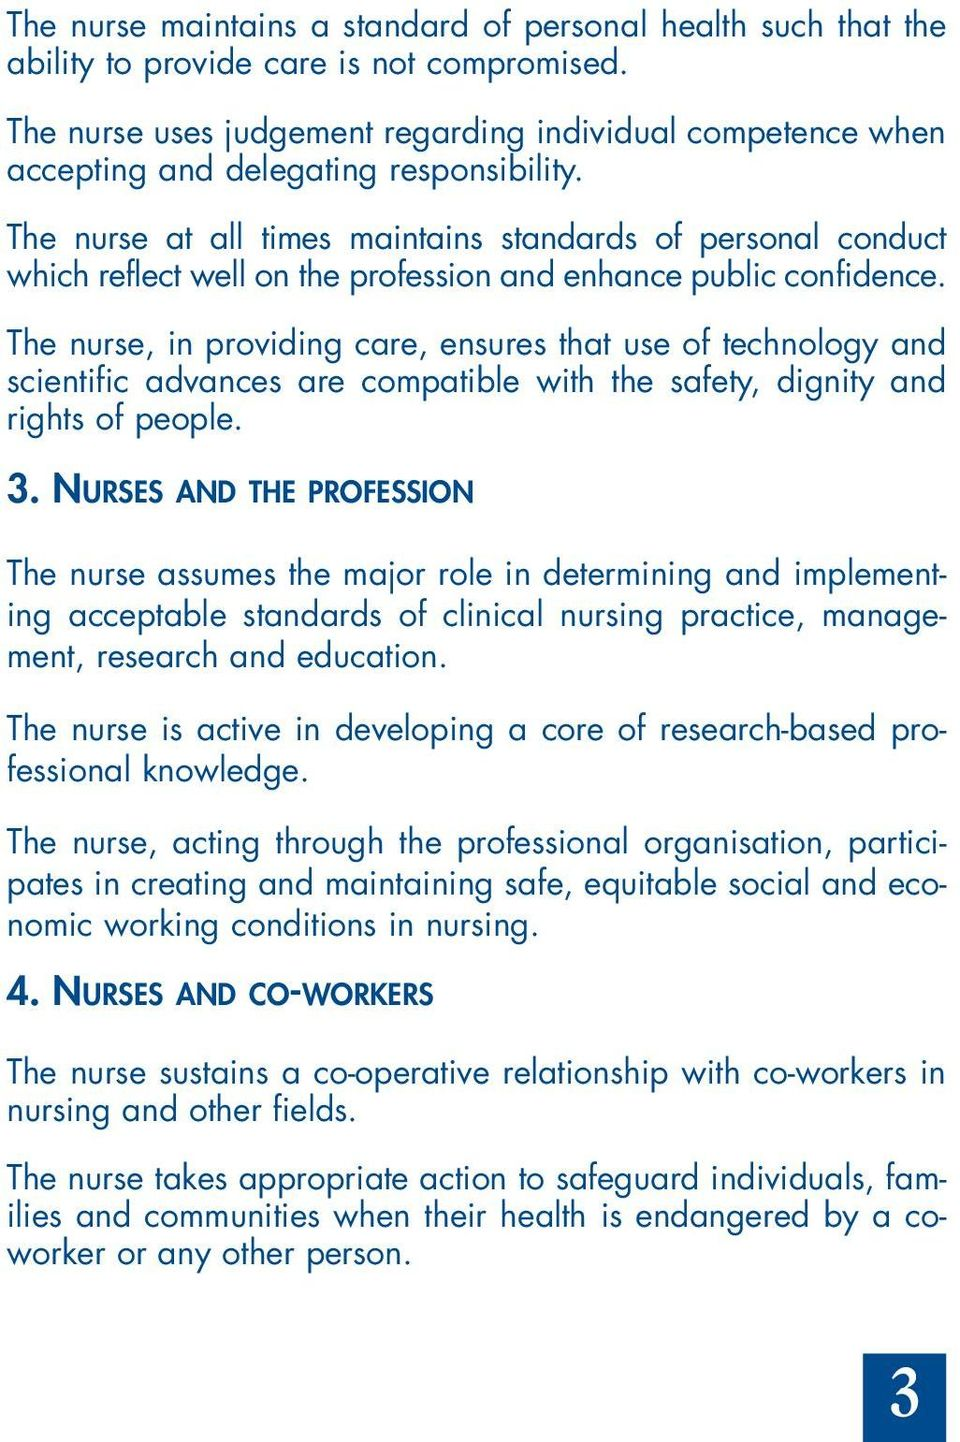 The nurse at all times maintains standards of personal conduct which reflect well on the profession and enhance public confidence.